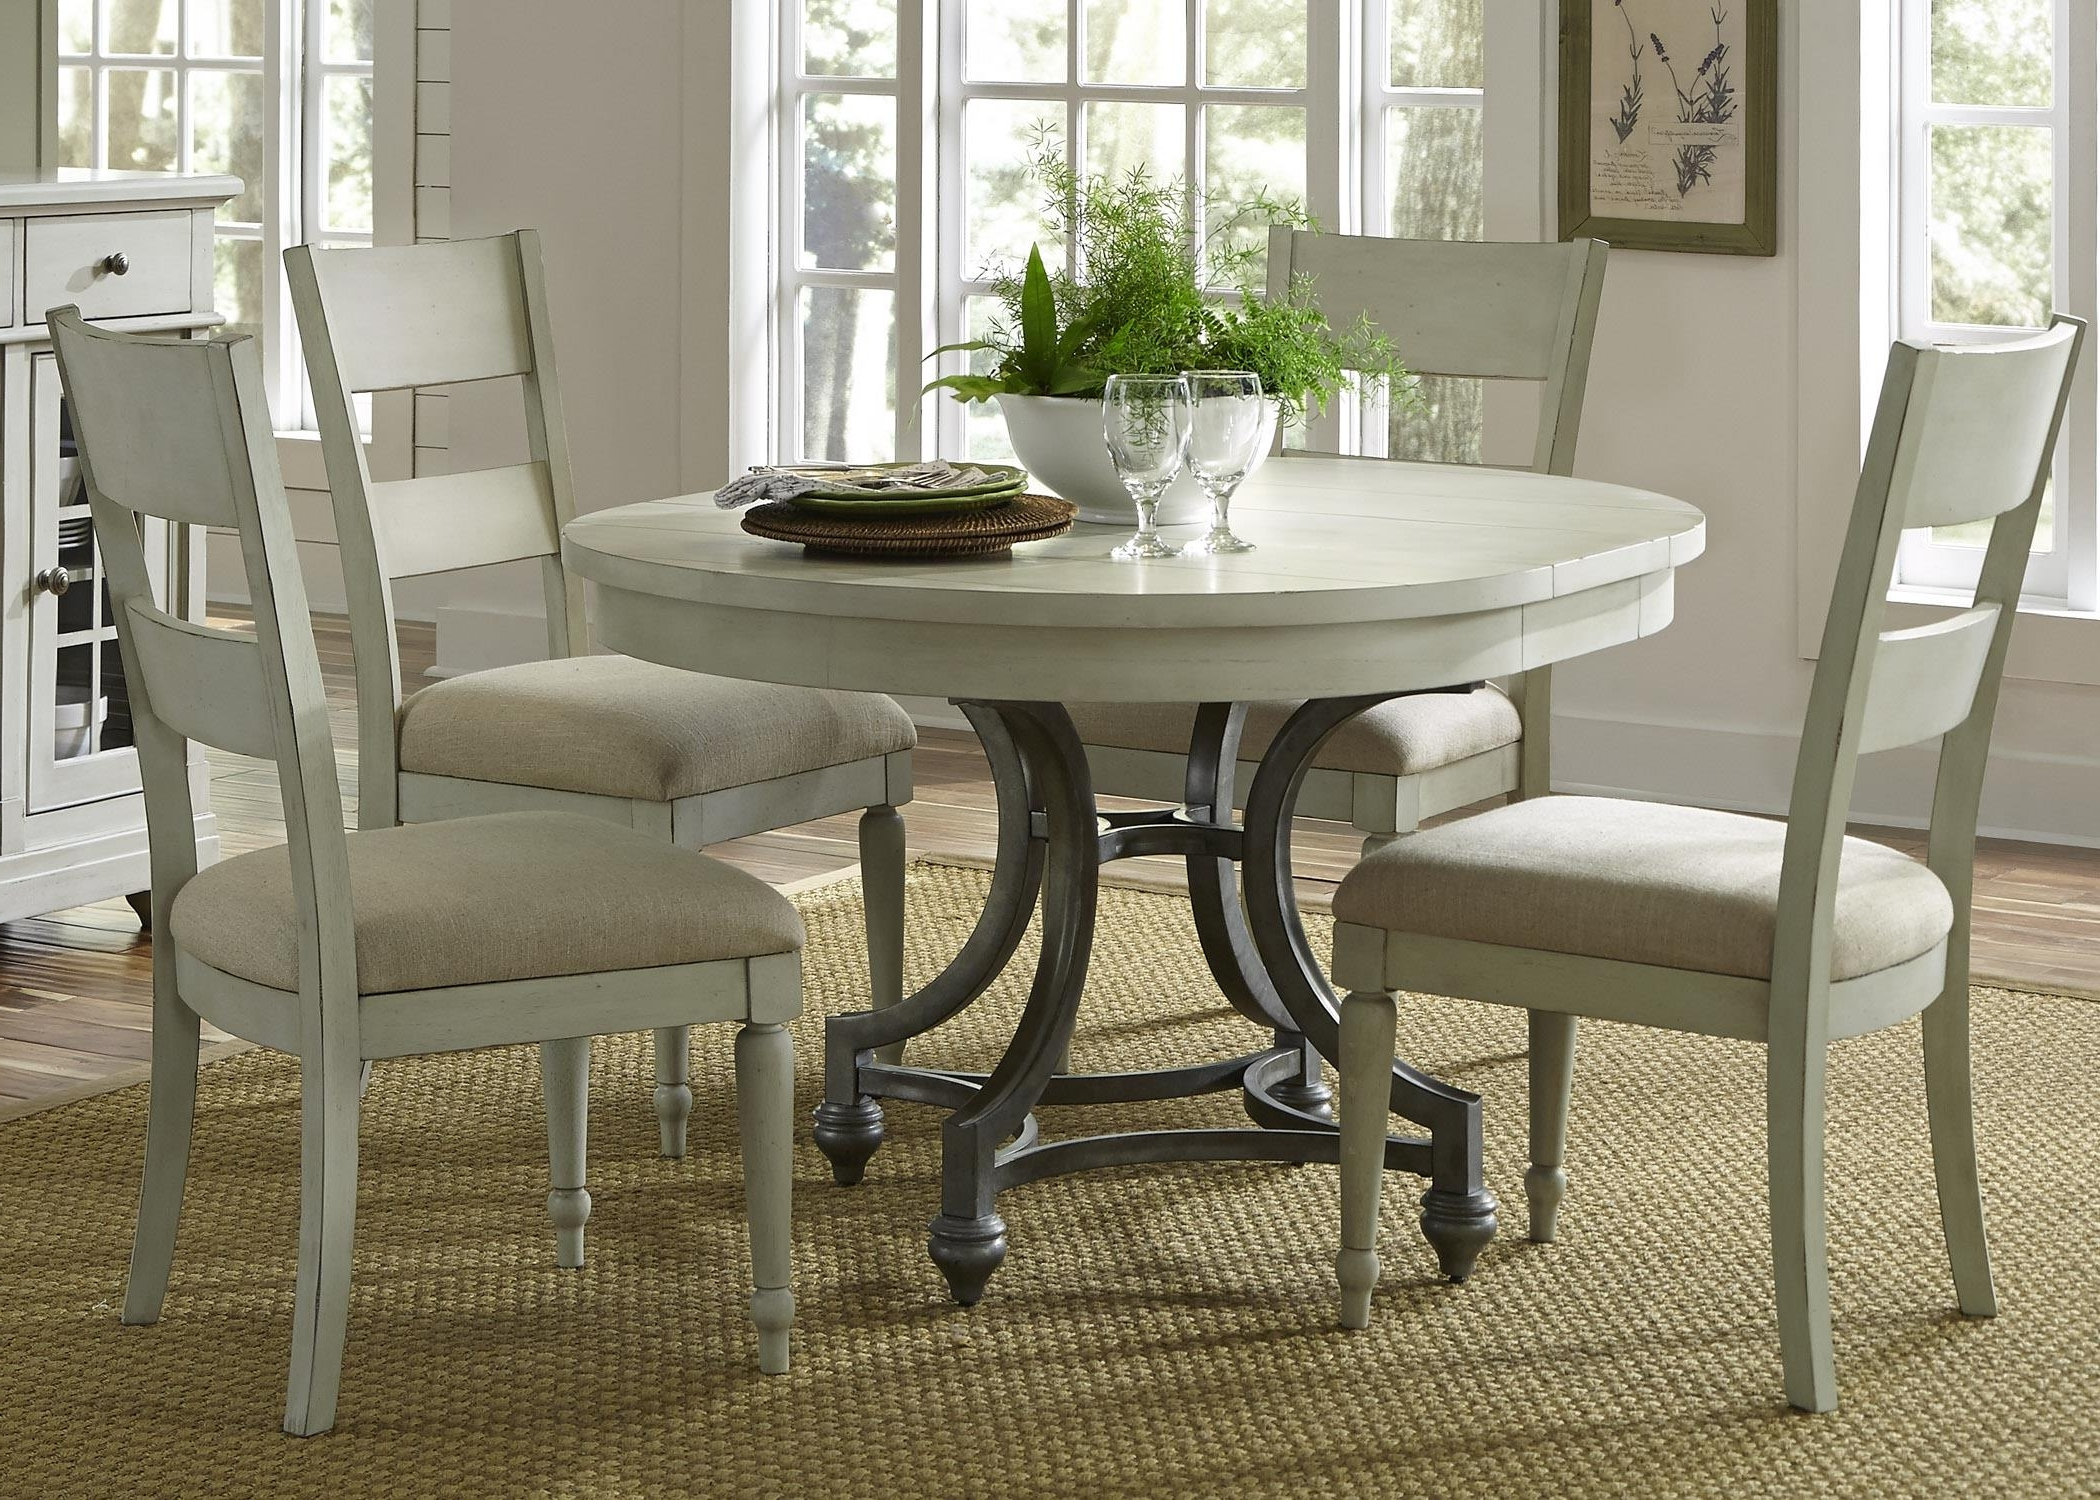 Round Table With 4 Slat Back Chairs Setliberty Furniture (View 22 of 25)